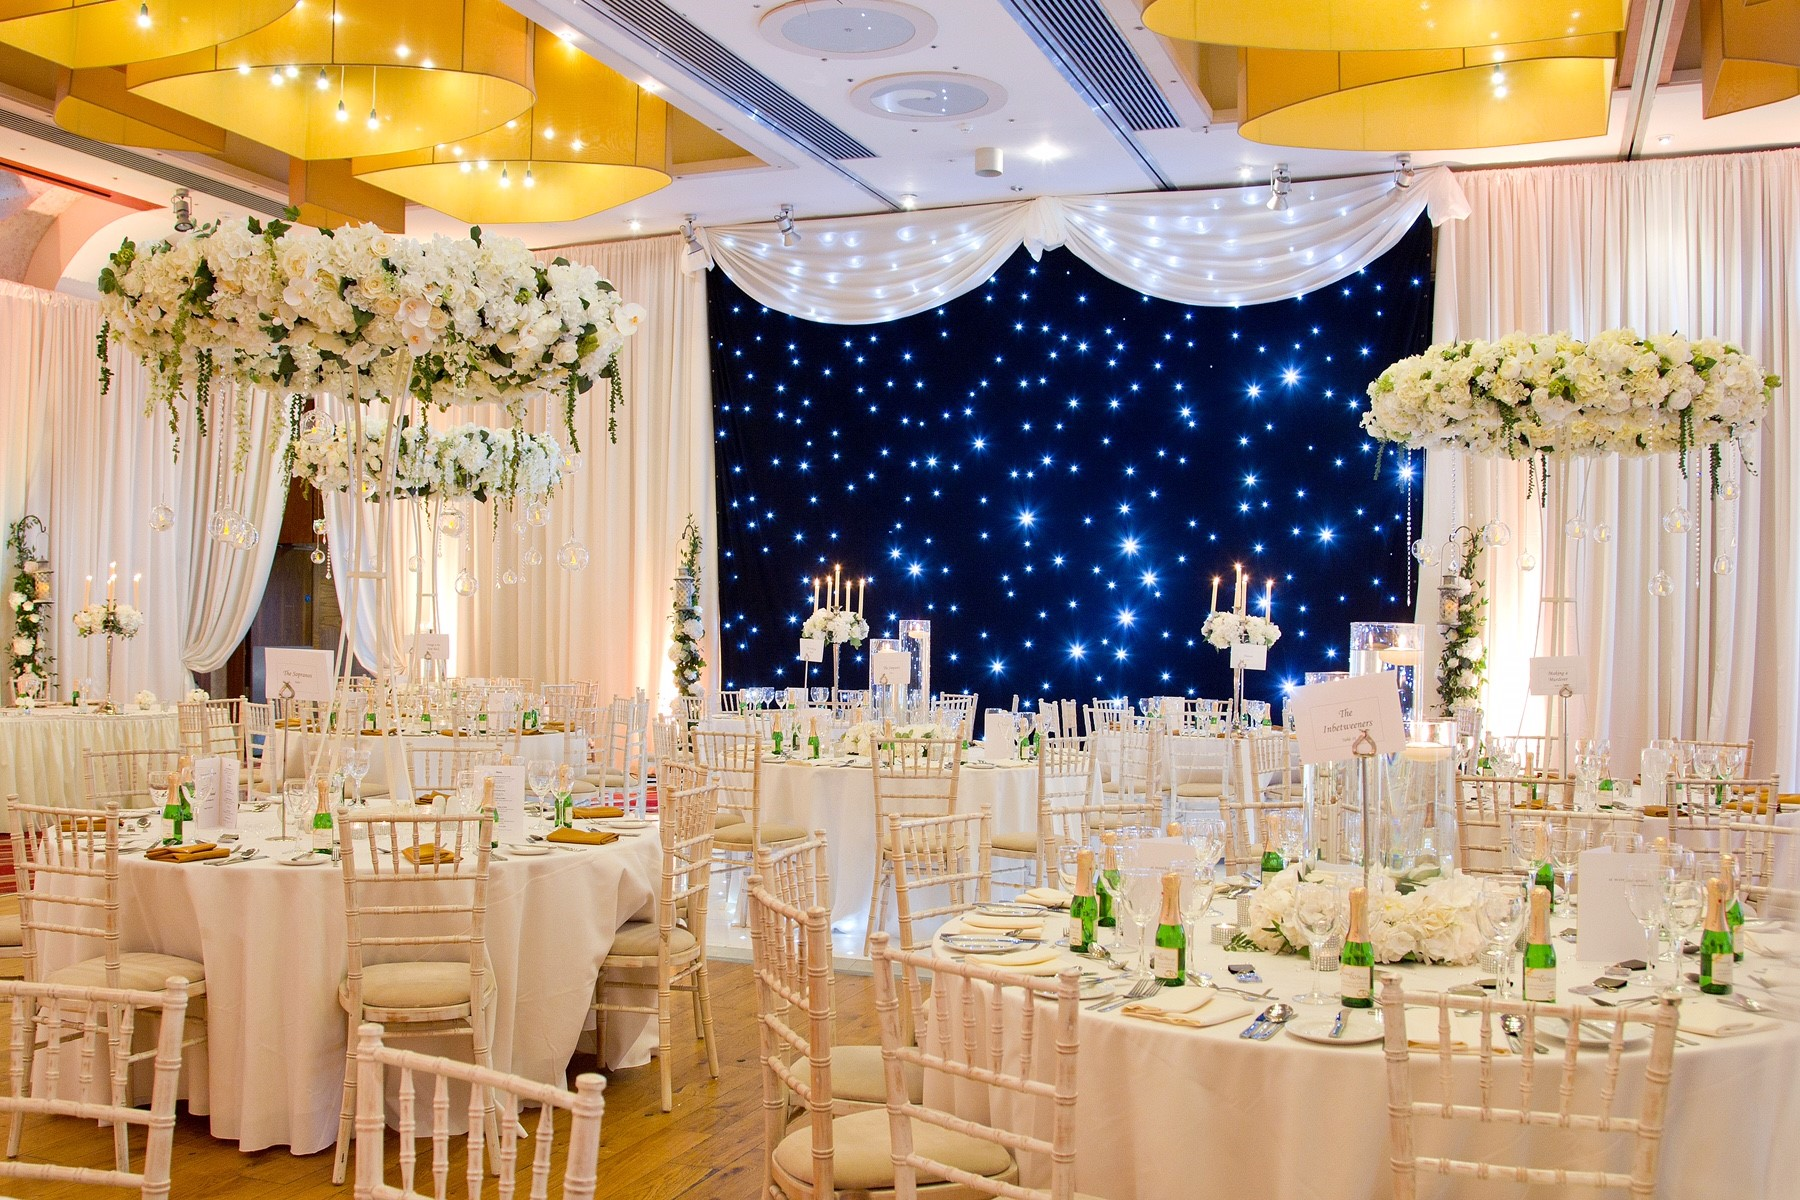 Black Star cloth and large floral wedding centrepieces at Osprey Hotel